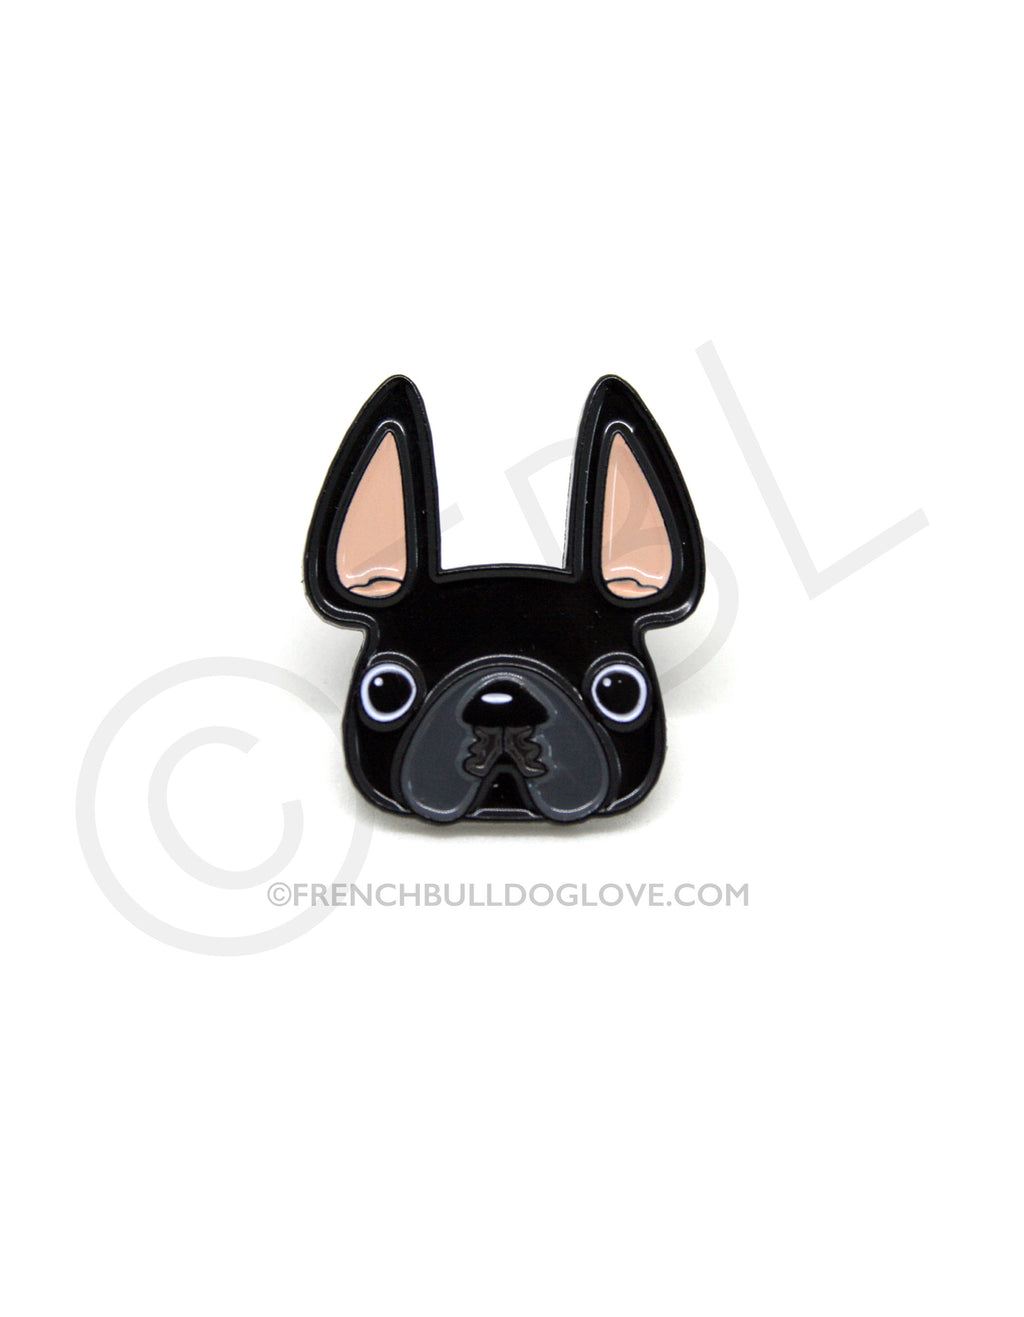 French Bulldog Enamel Pin - Black Frenchie